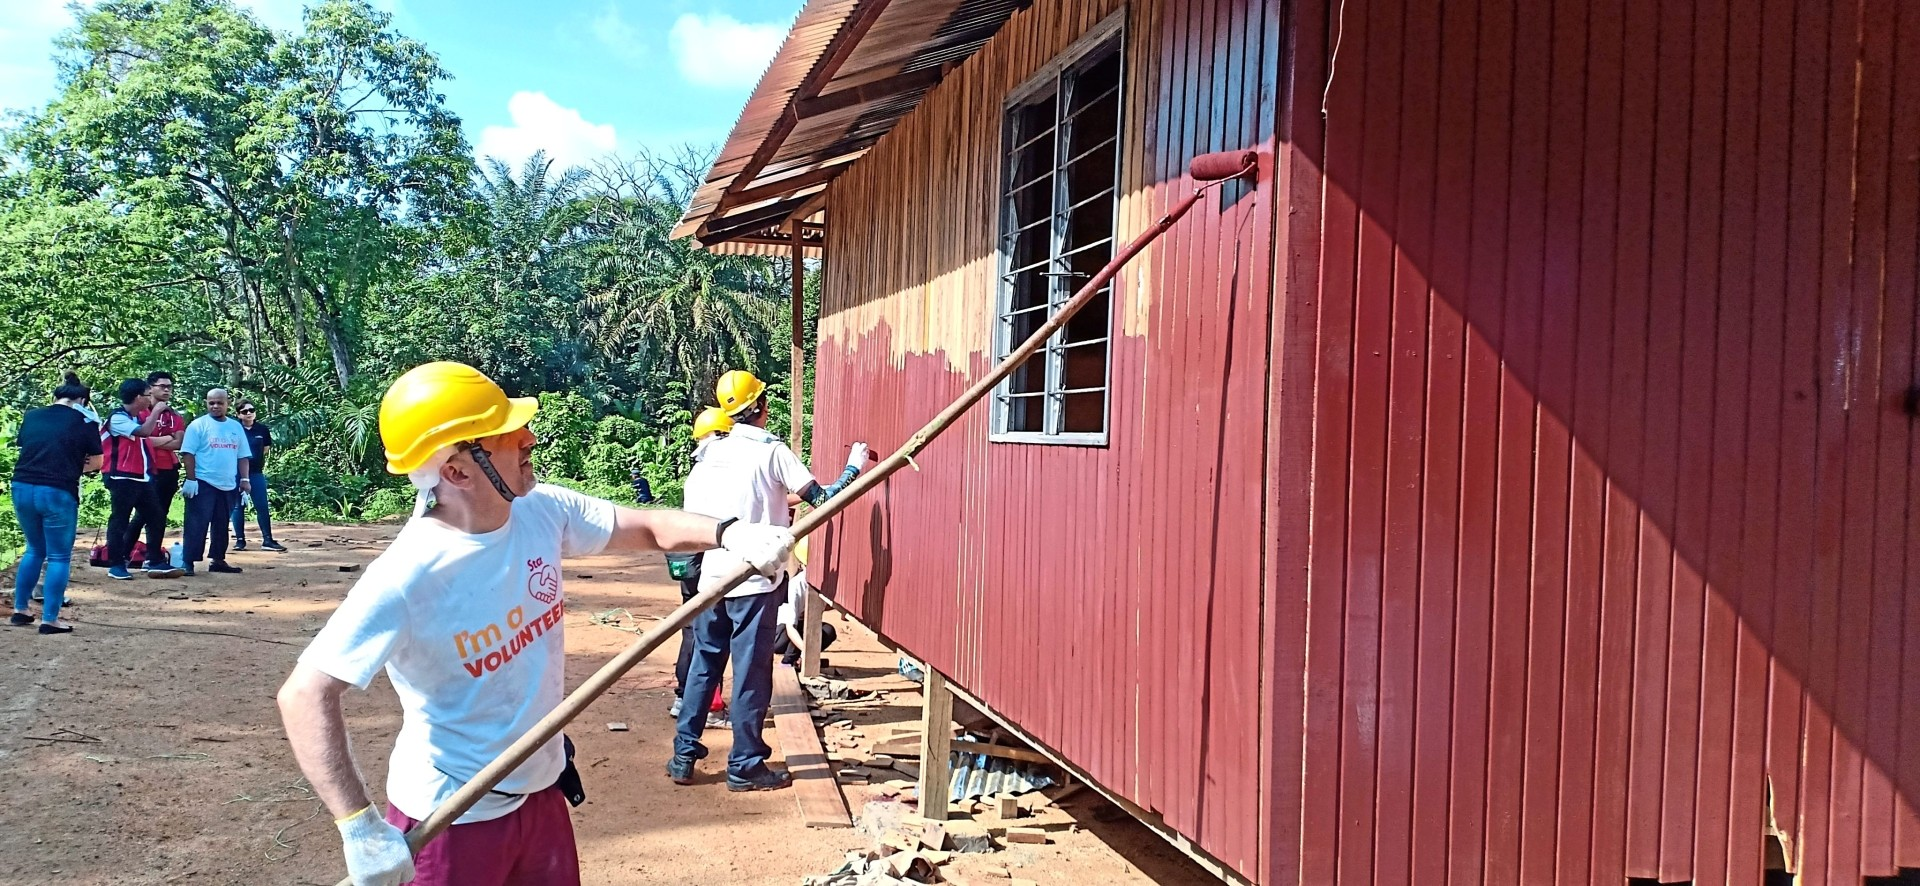 One of the houses being painted as a finishing touch.